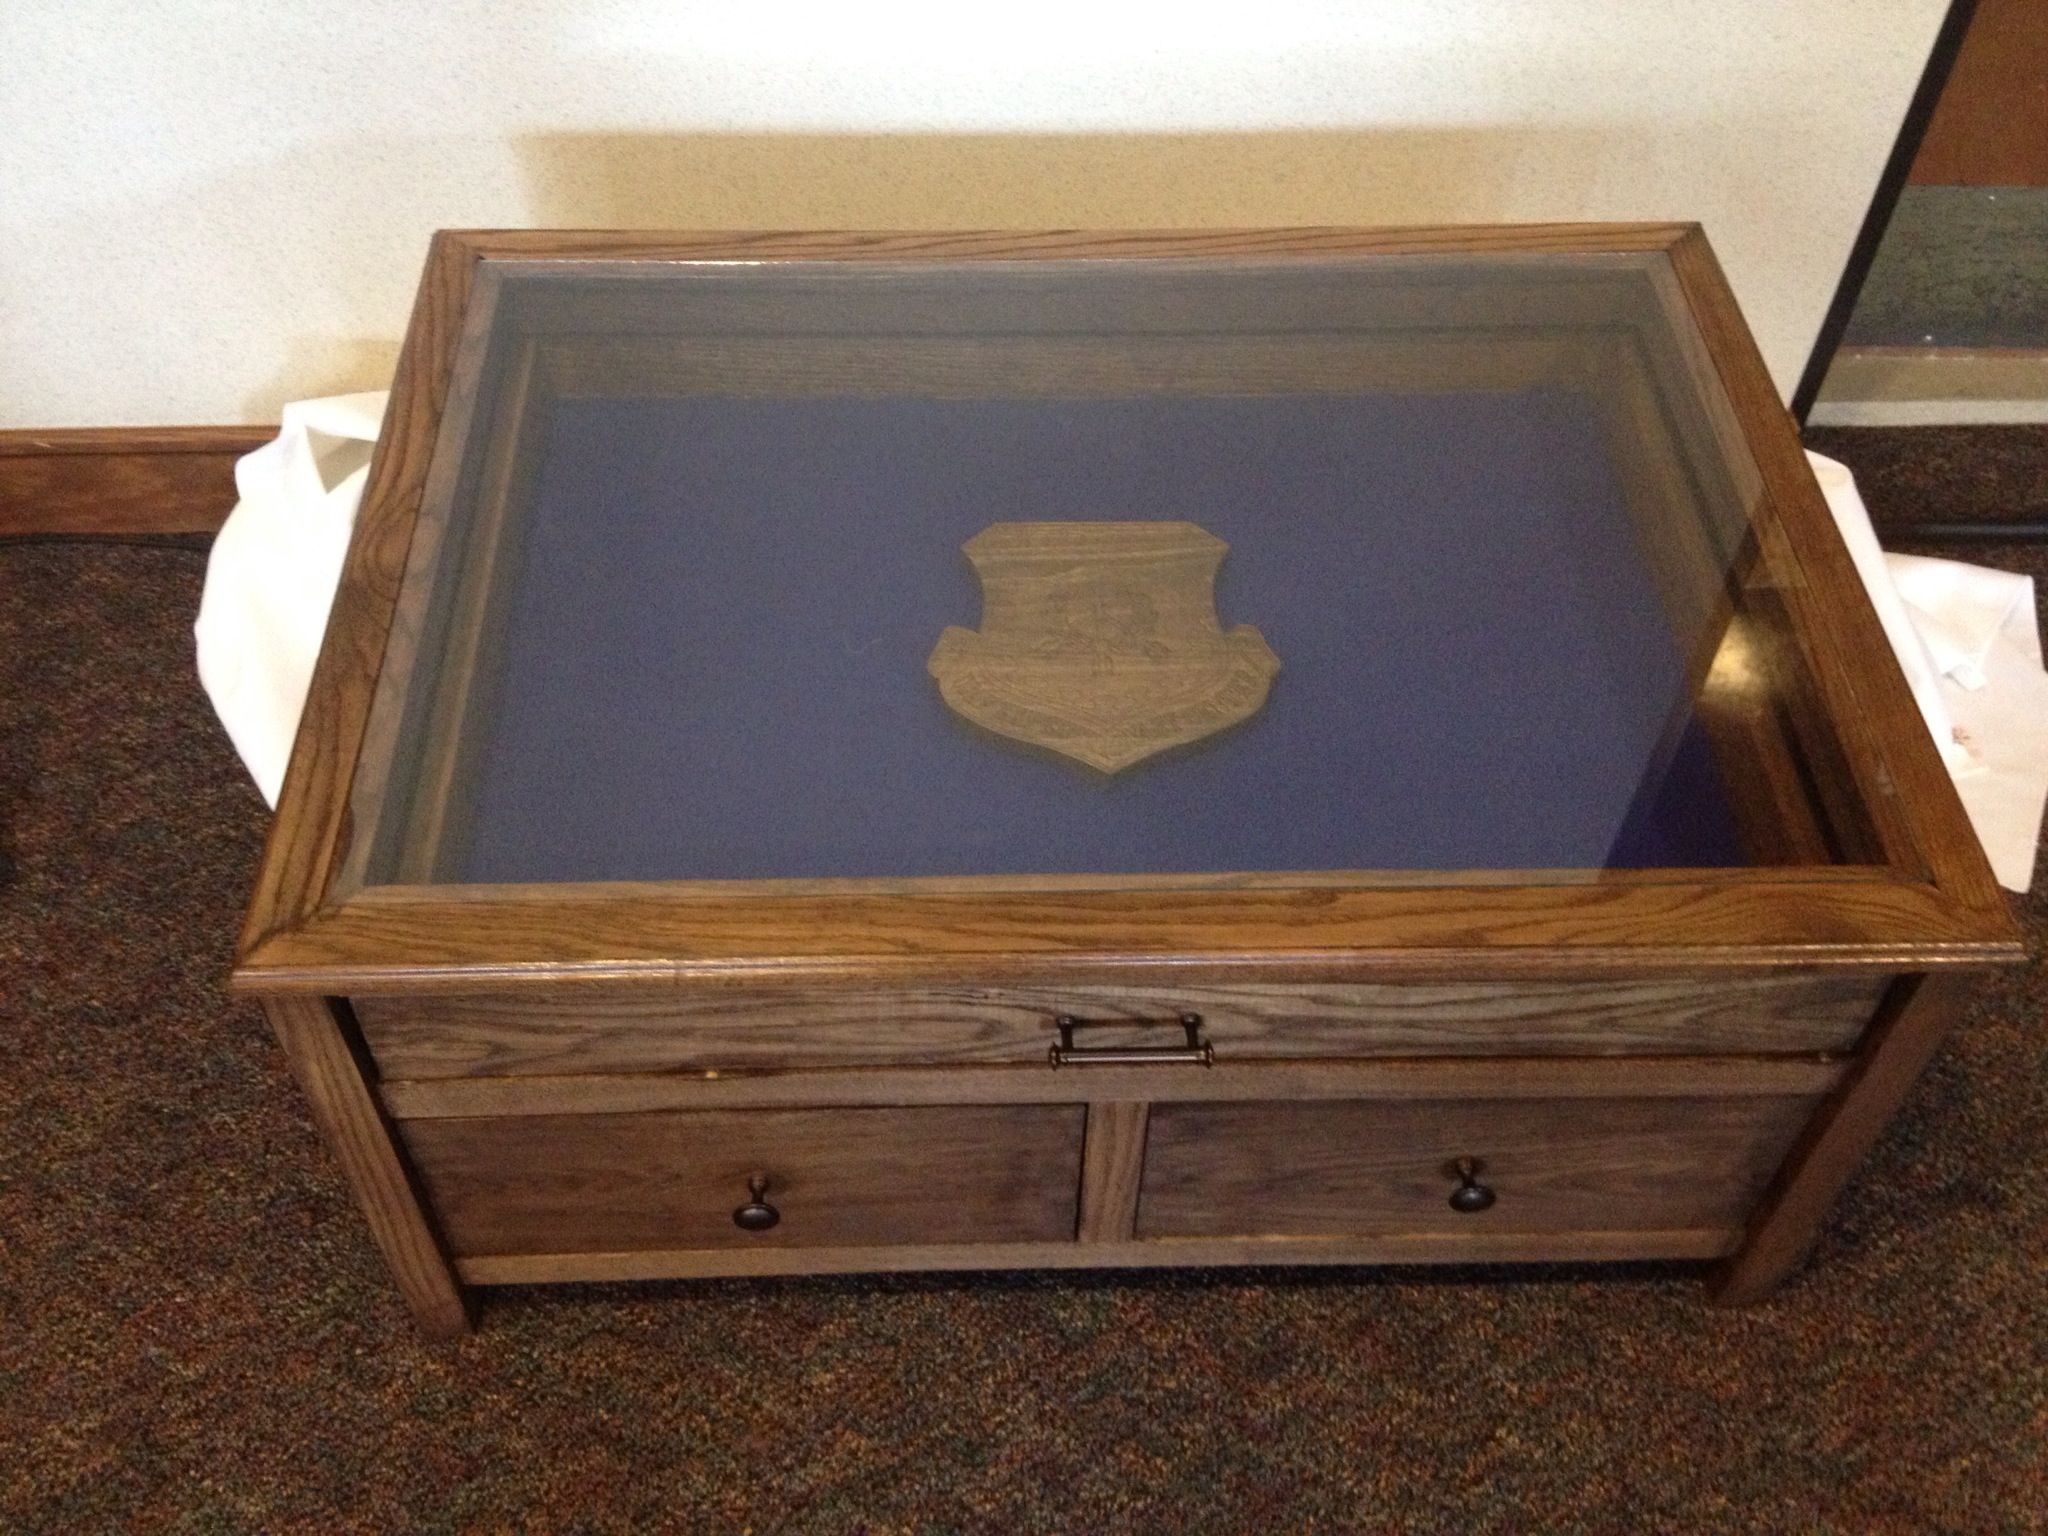 Glass Top Coffee Table To Display Military Coins Military Coins Military Coin Display Display Coffee Table